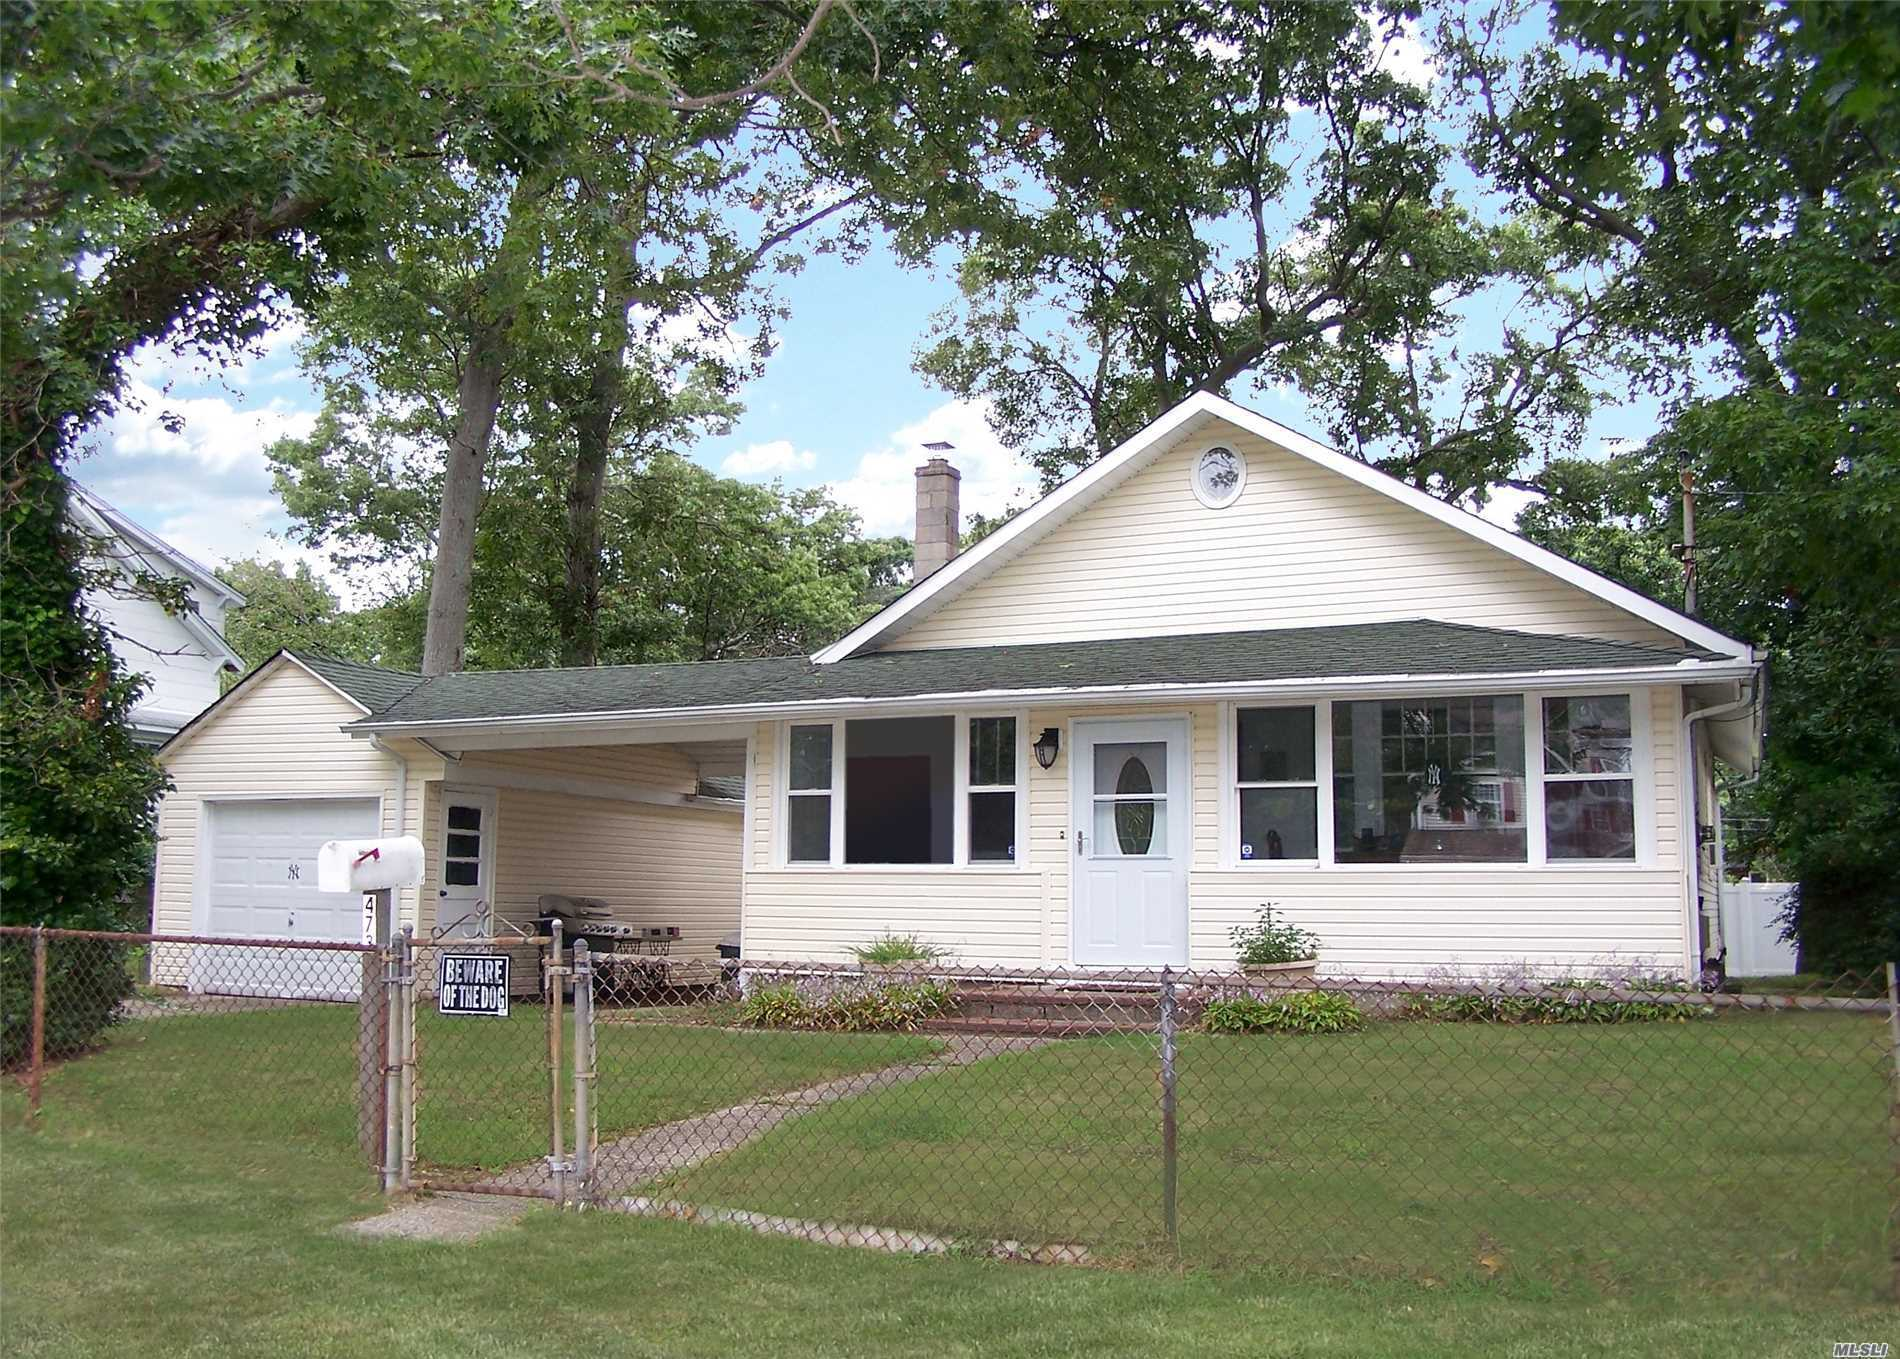 Photo of home for sale at 473 Michigan St, Ronkonkoma NY